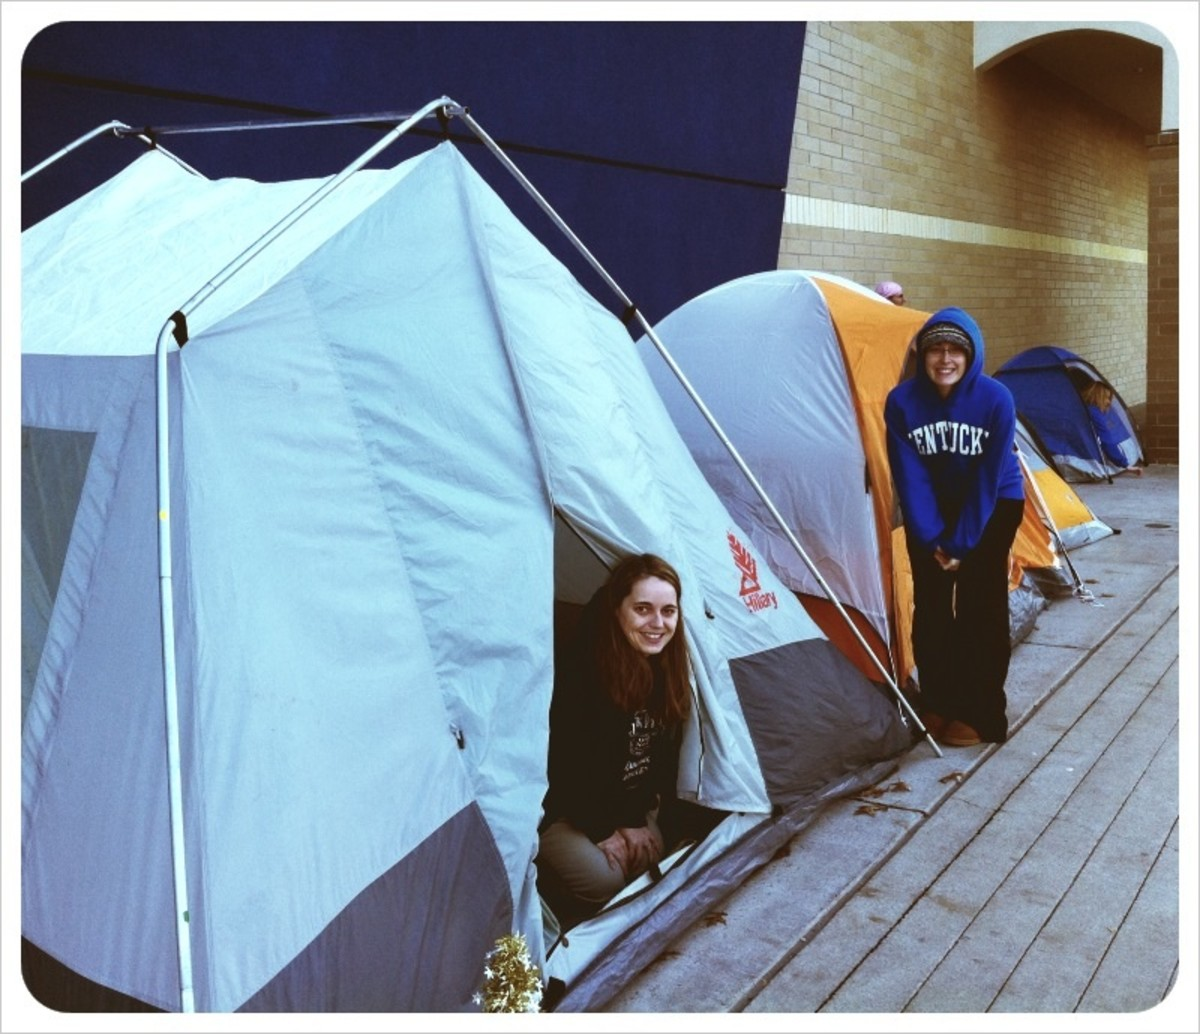 Shoppers camped at Best Buy 2 days before Black Friday sales began.